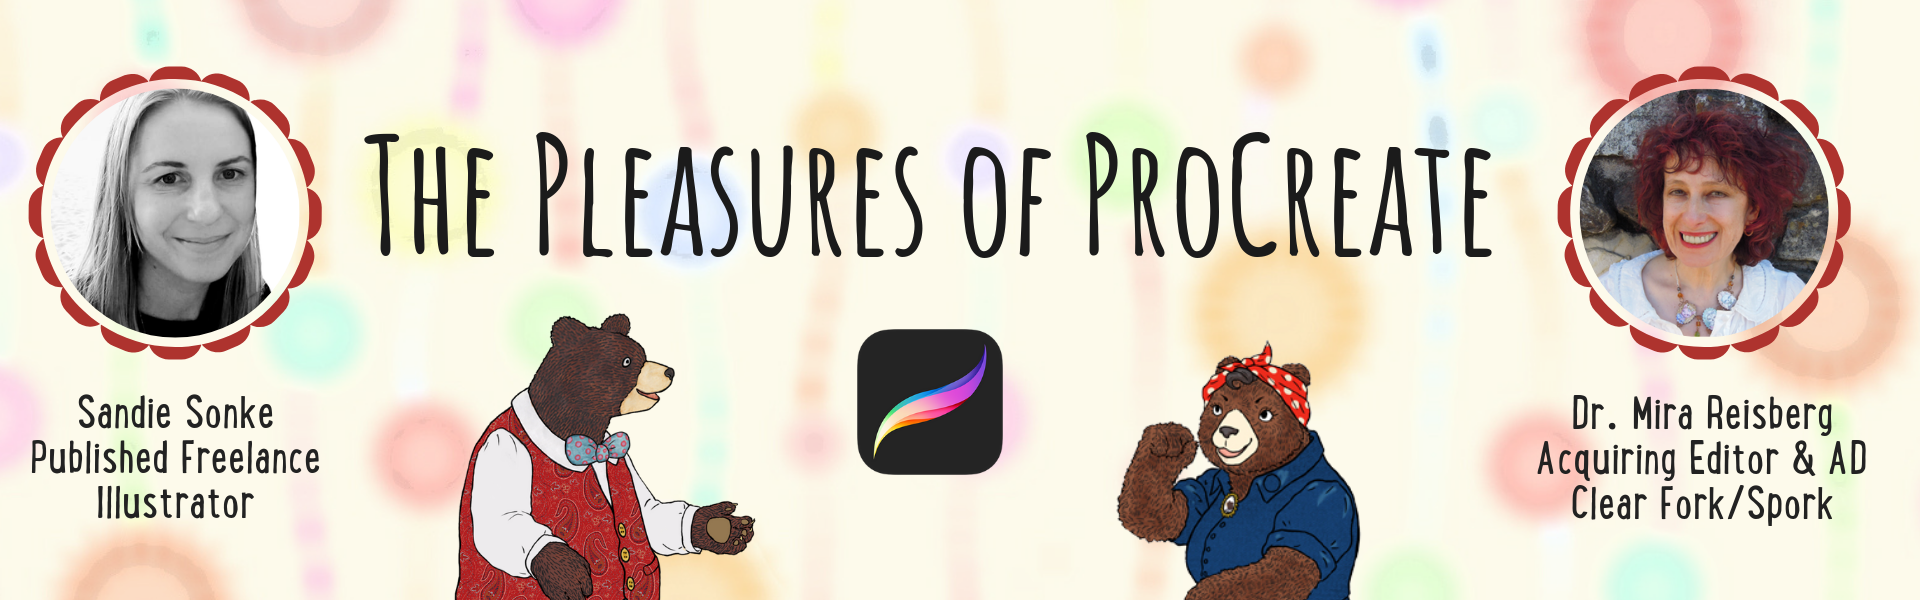 The Pleasures of ProCreate with Sandie Sonke and Mira Reisberg at the Children's Book Academy